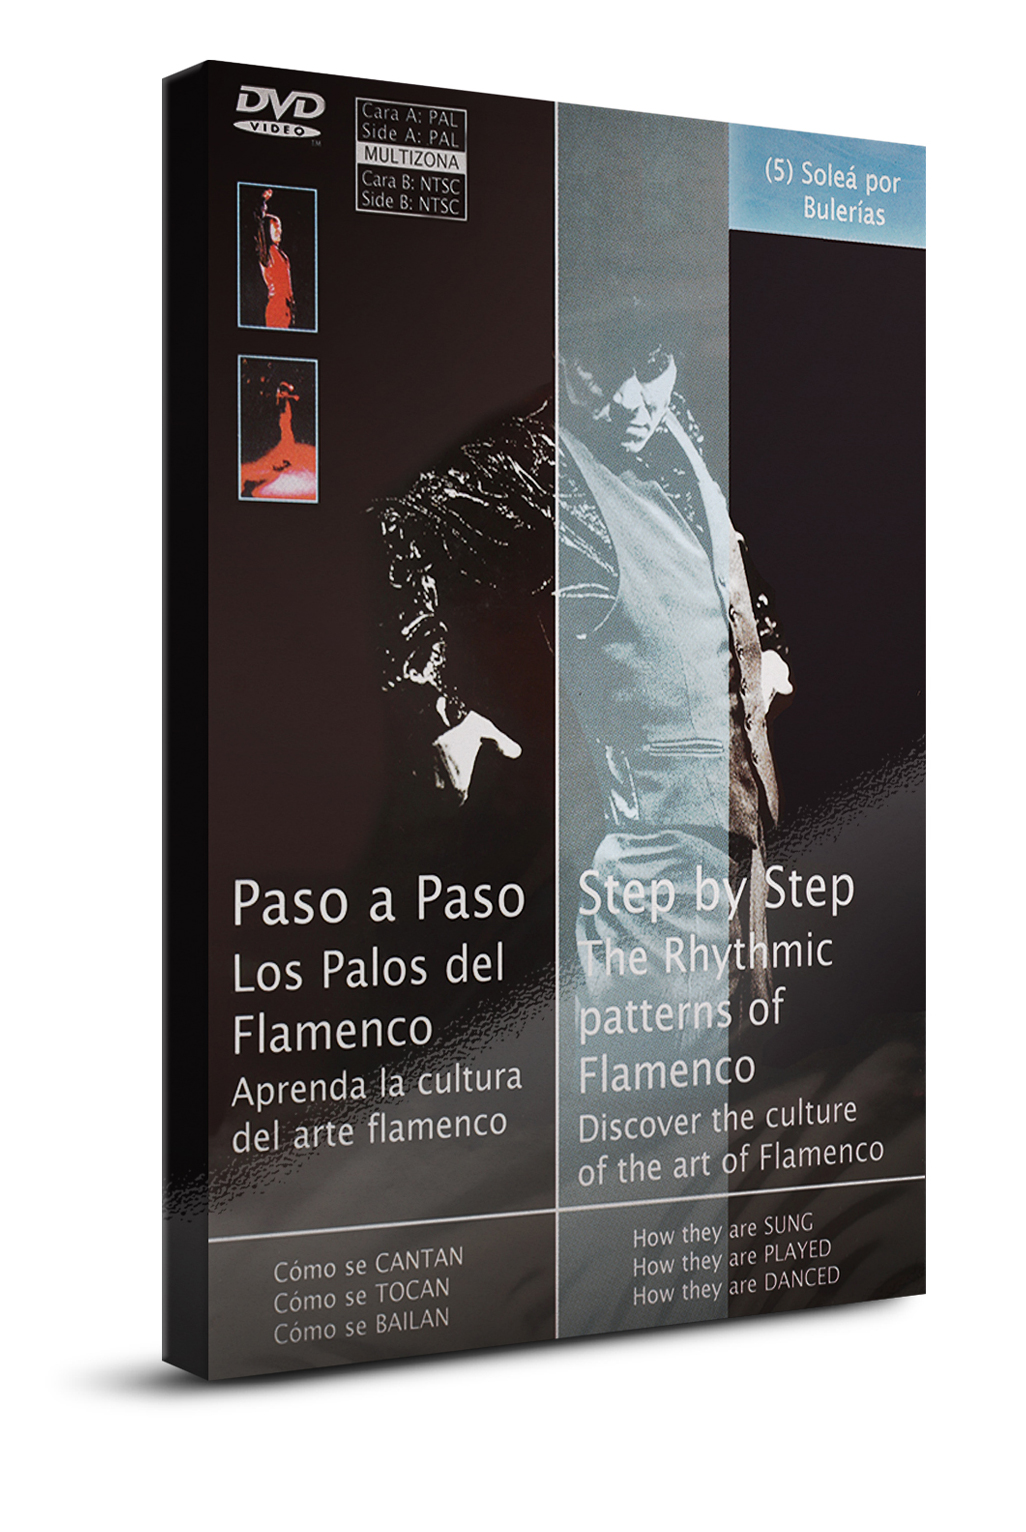 Flamenco dance classes Soleá por Bulerías DVD